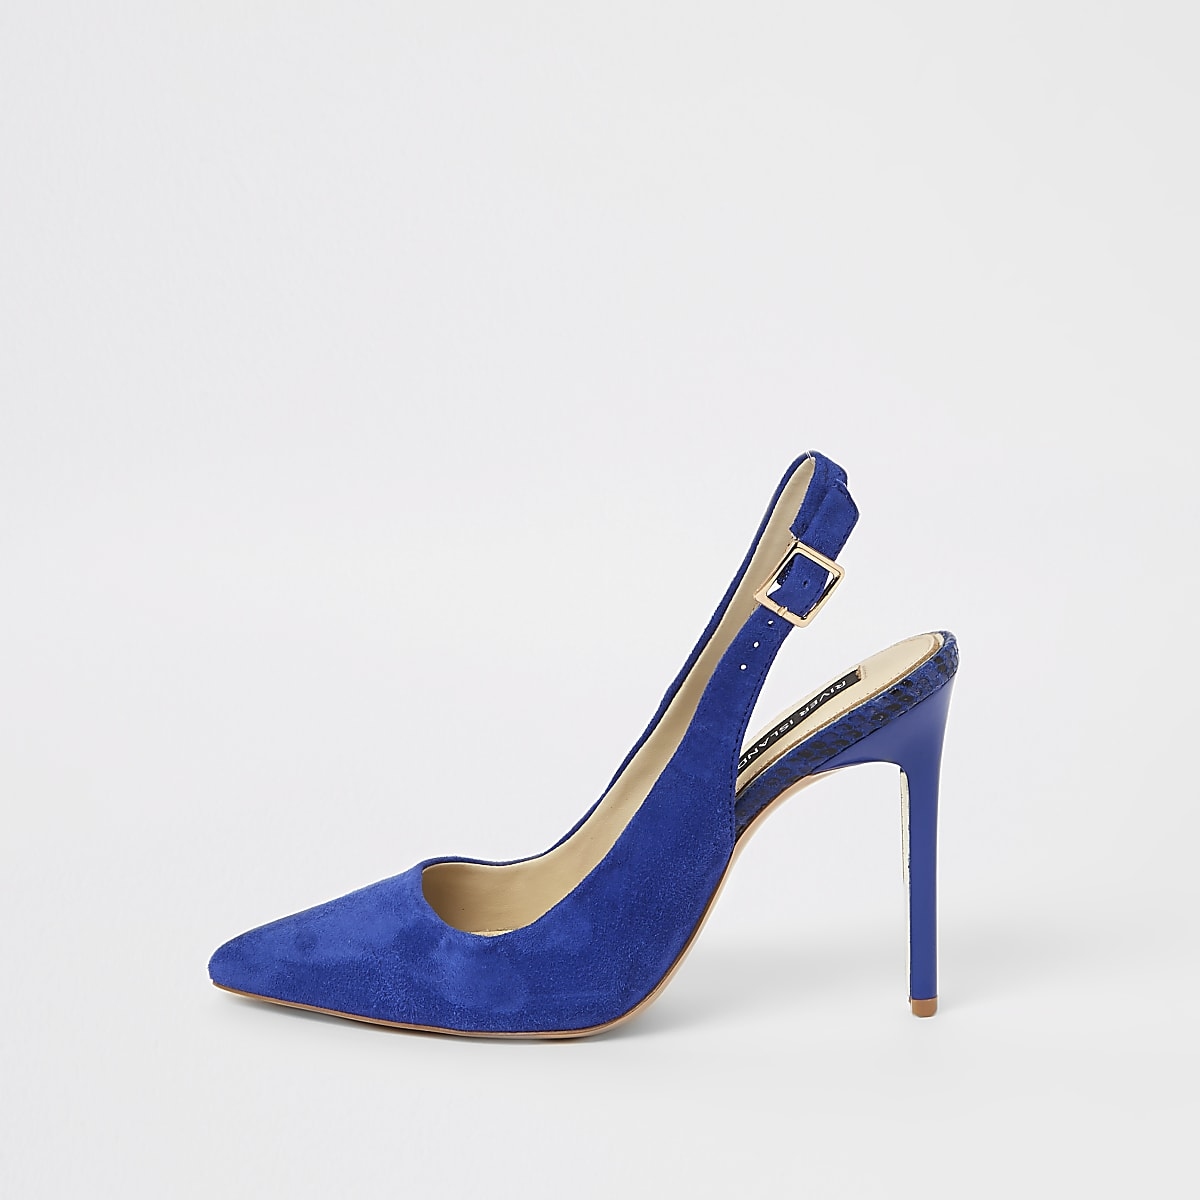 Blue pointed toe slingback court shoes